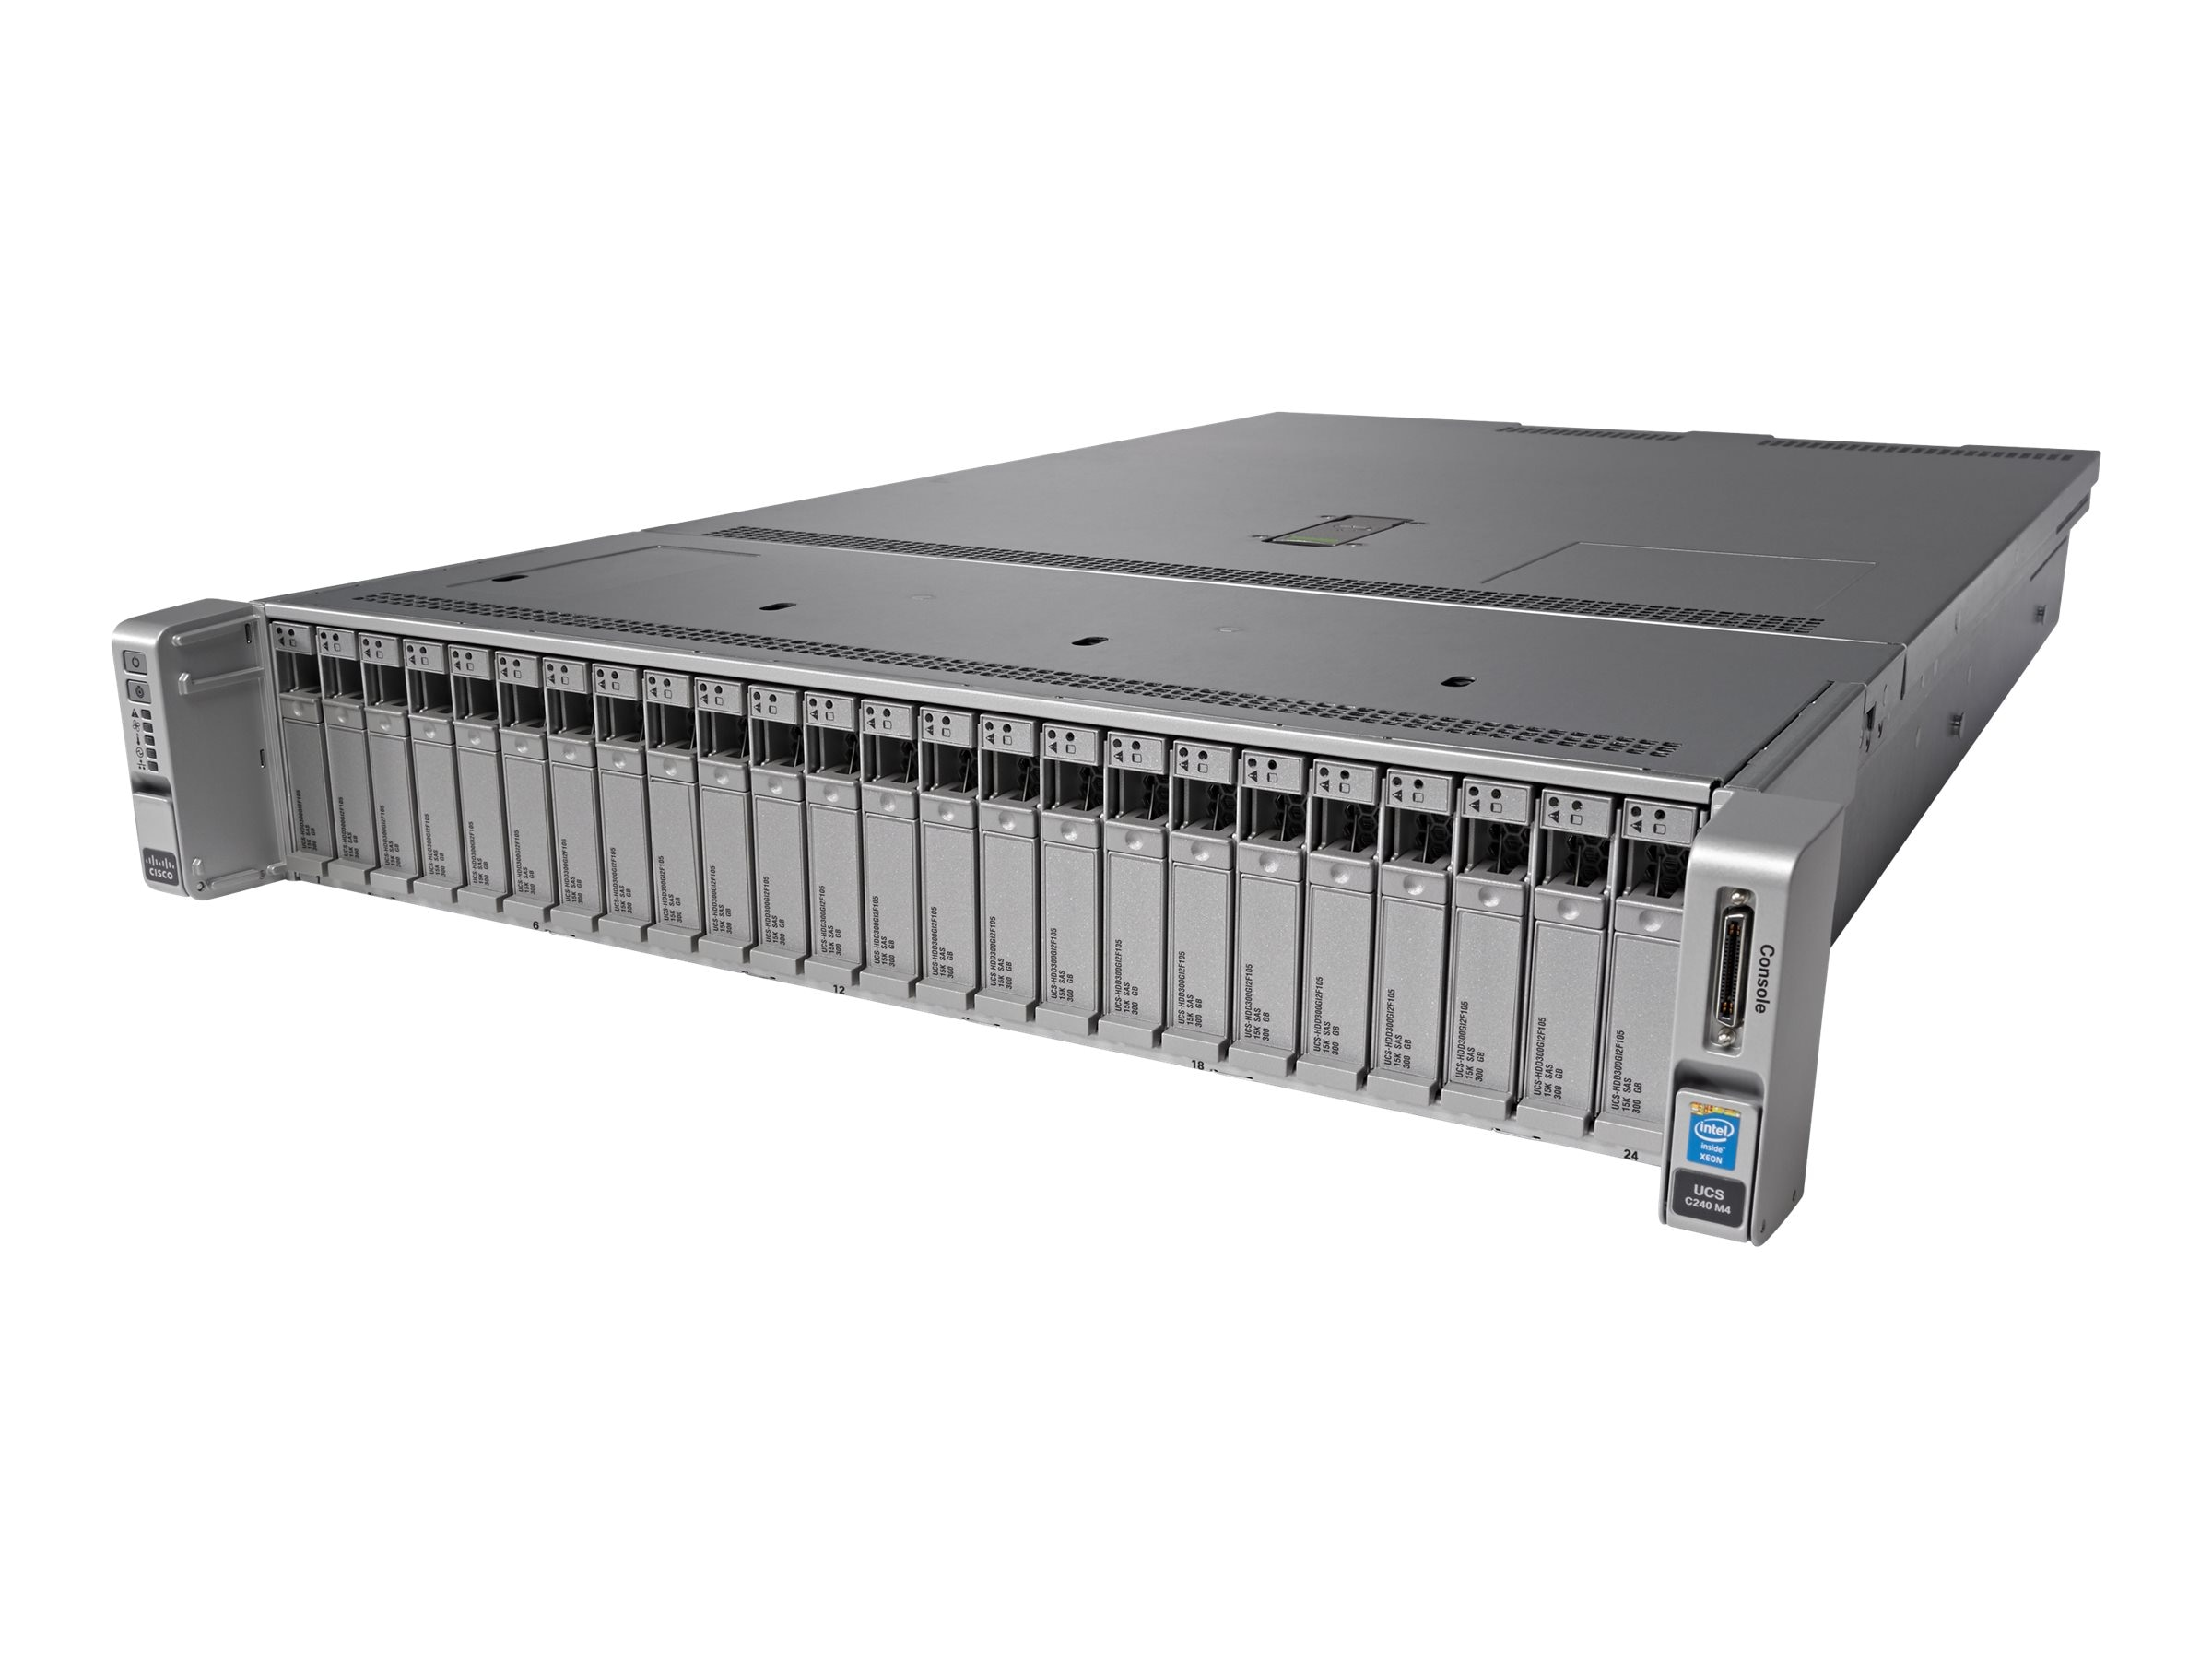 Cisco UCS SP Select C240 M4SX Frequency 1 (2x)Xeon E5-2643 v3 256GB VIC1227